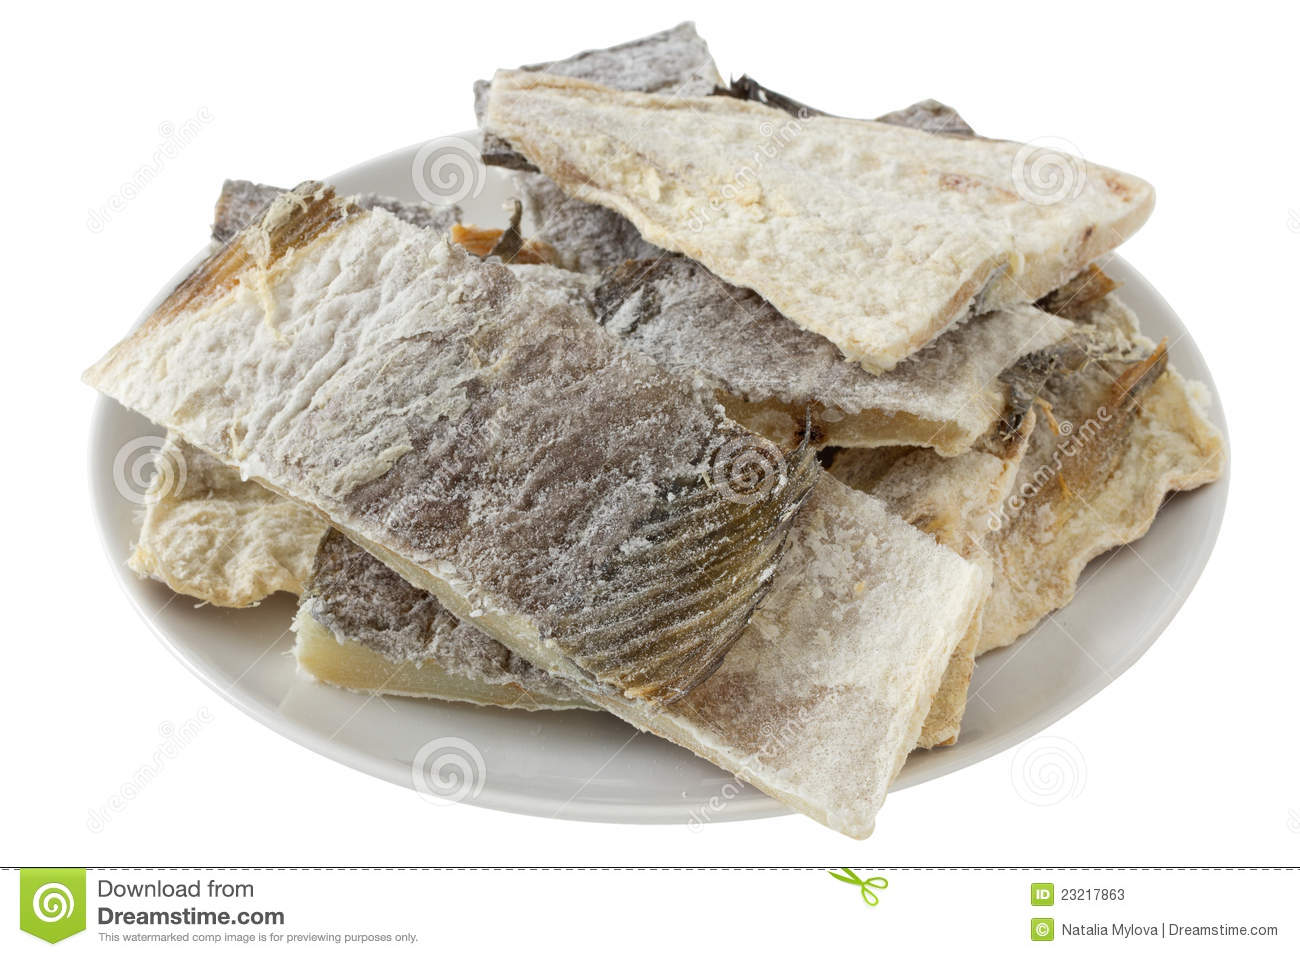 Salted cod fish images galleries with for Where to buy salted cod fish